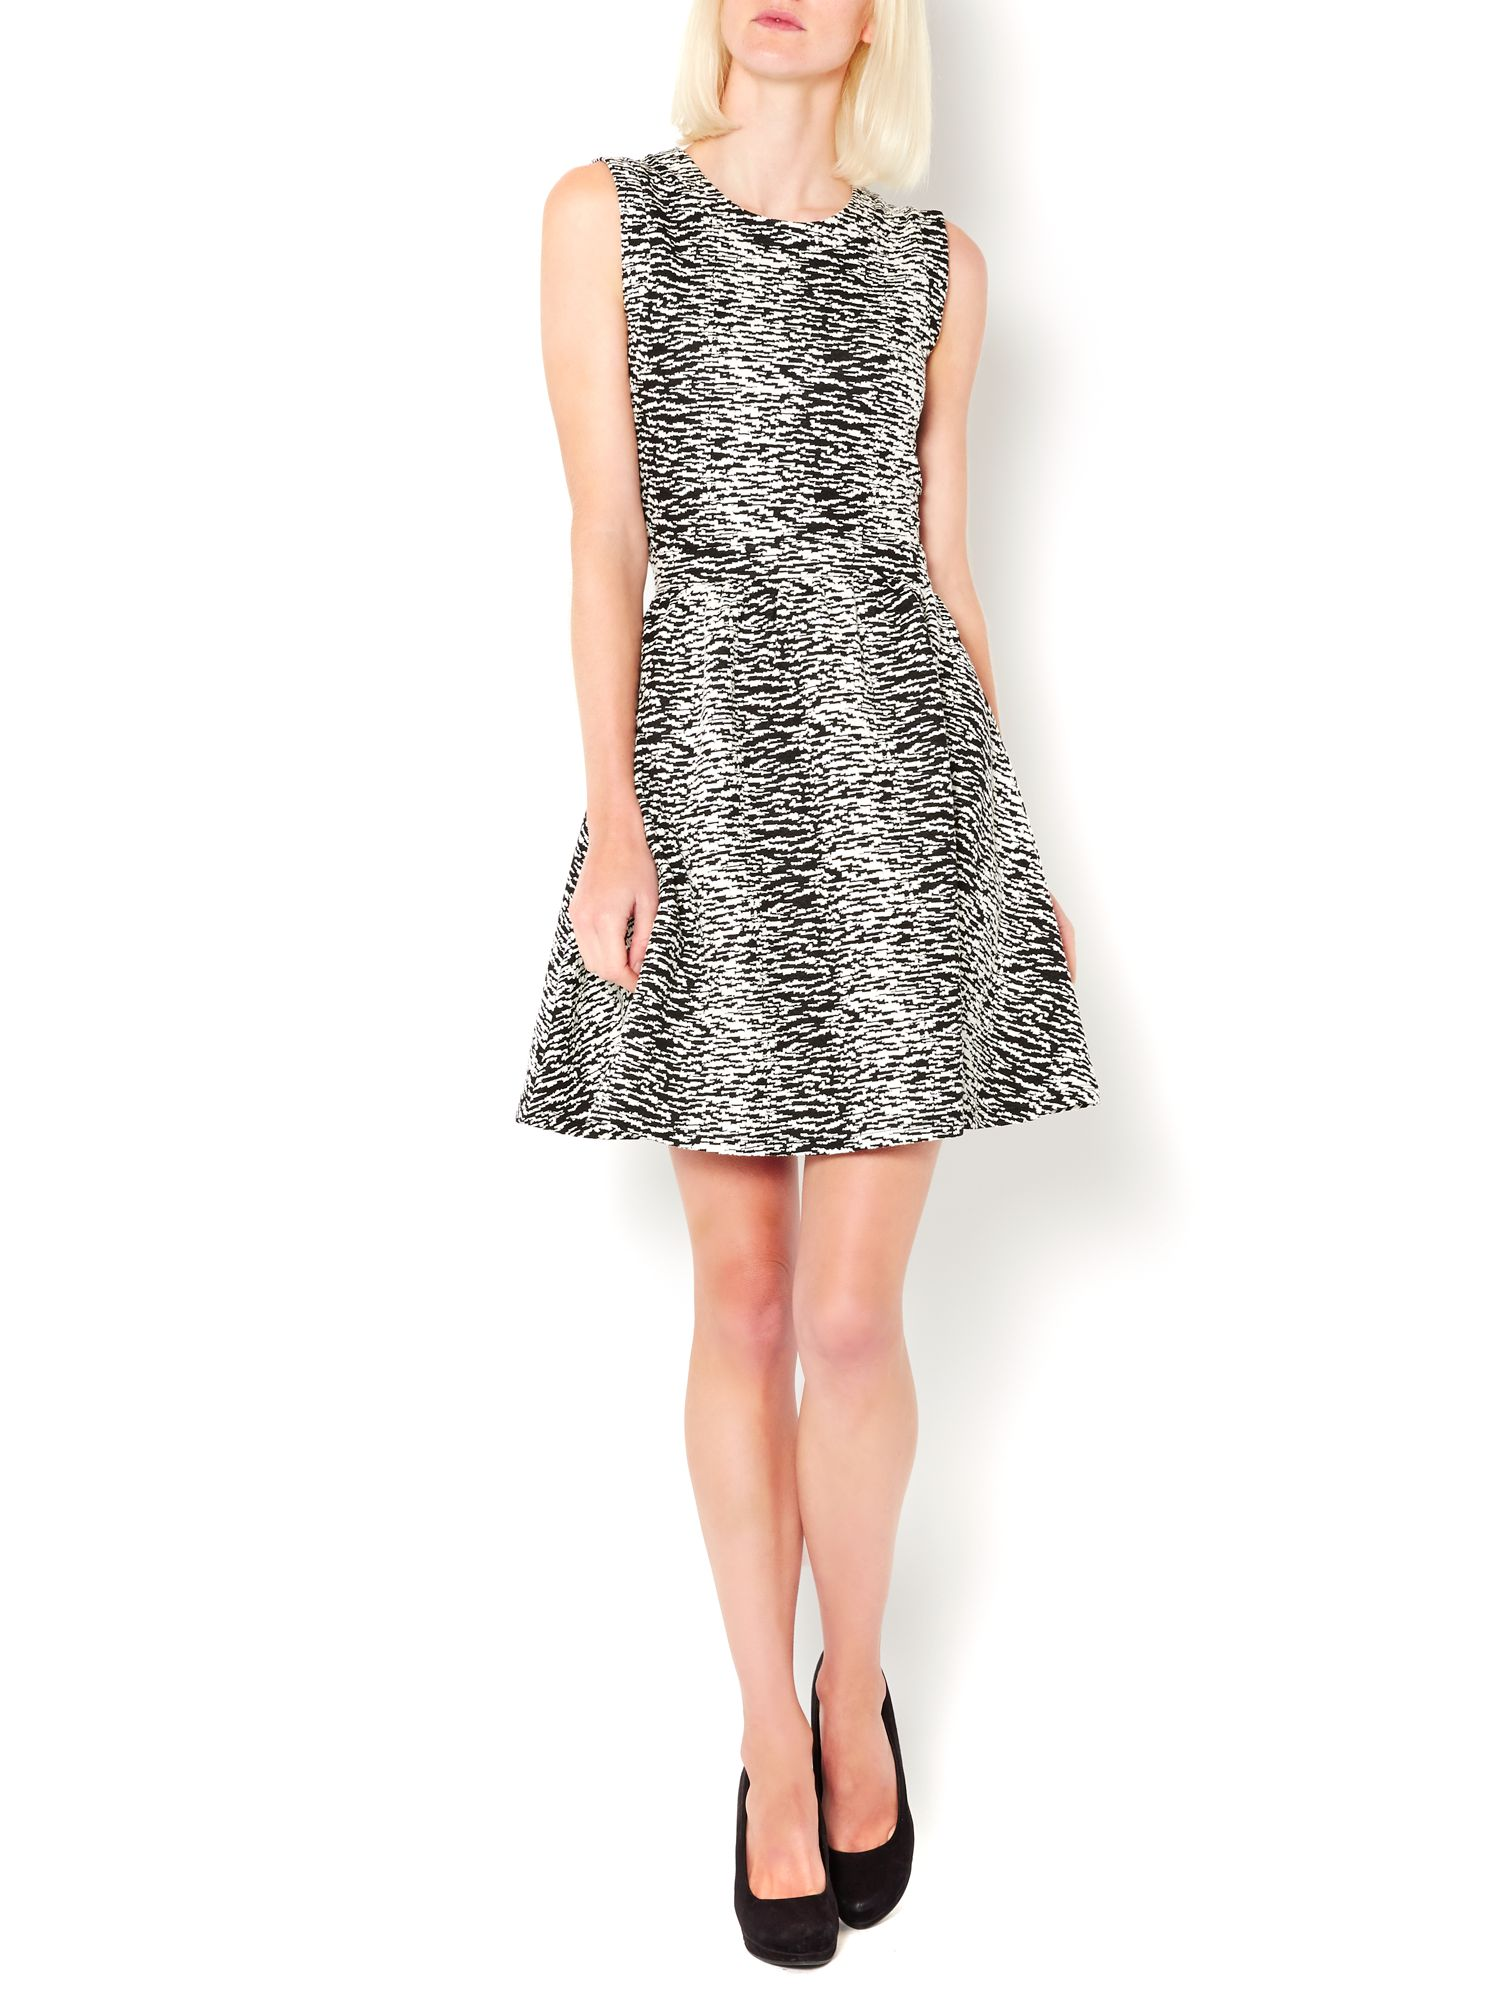 Ikat jacquard skater dress